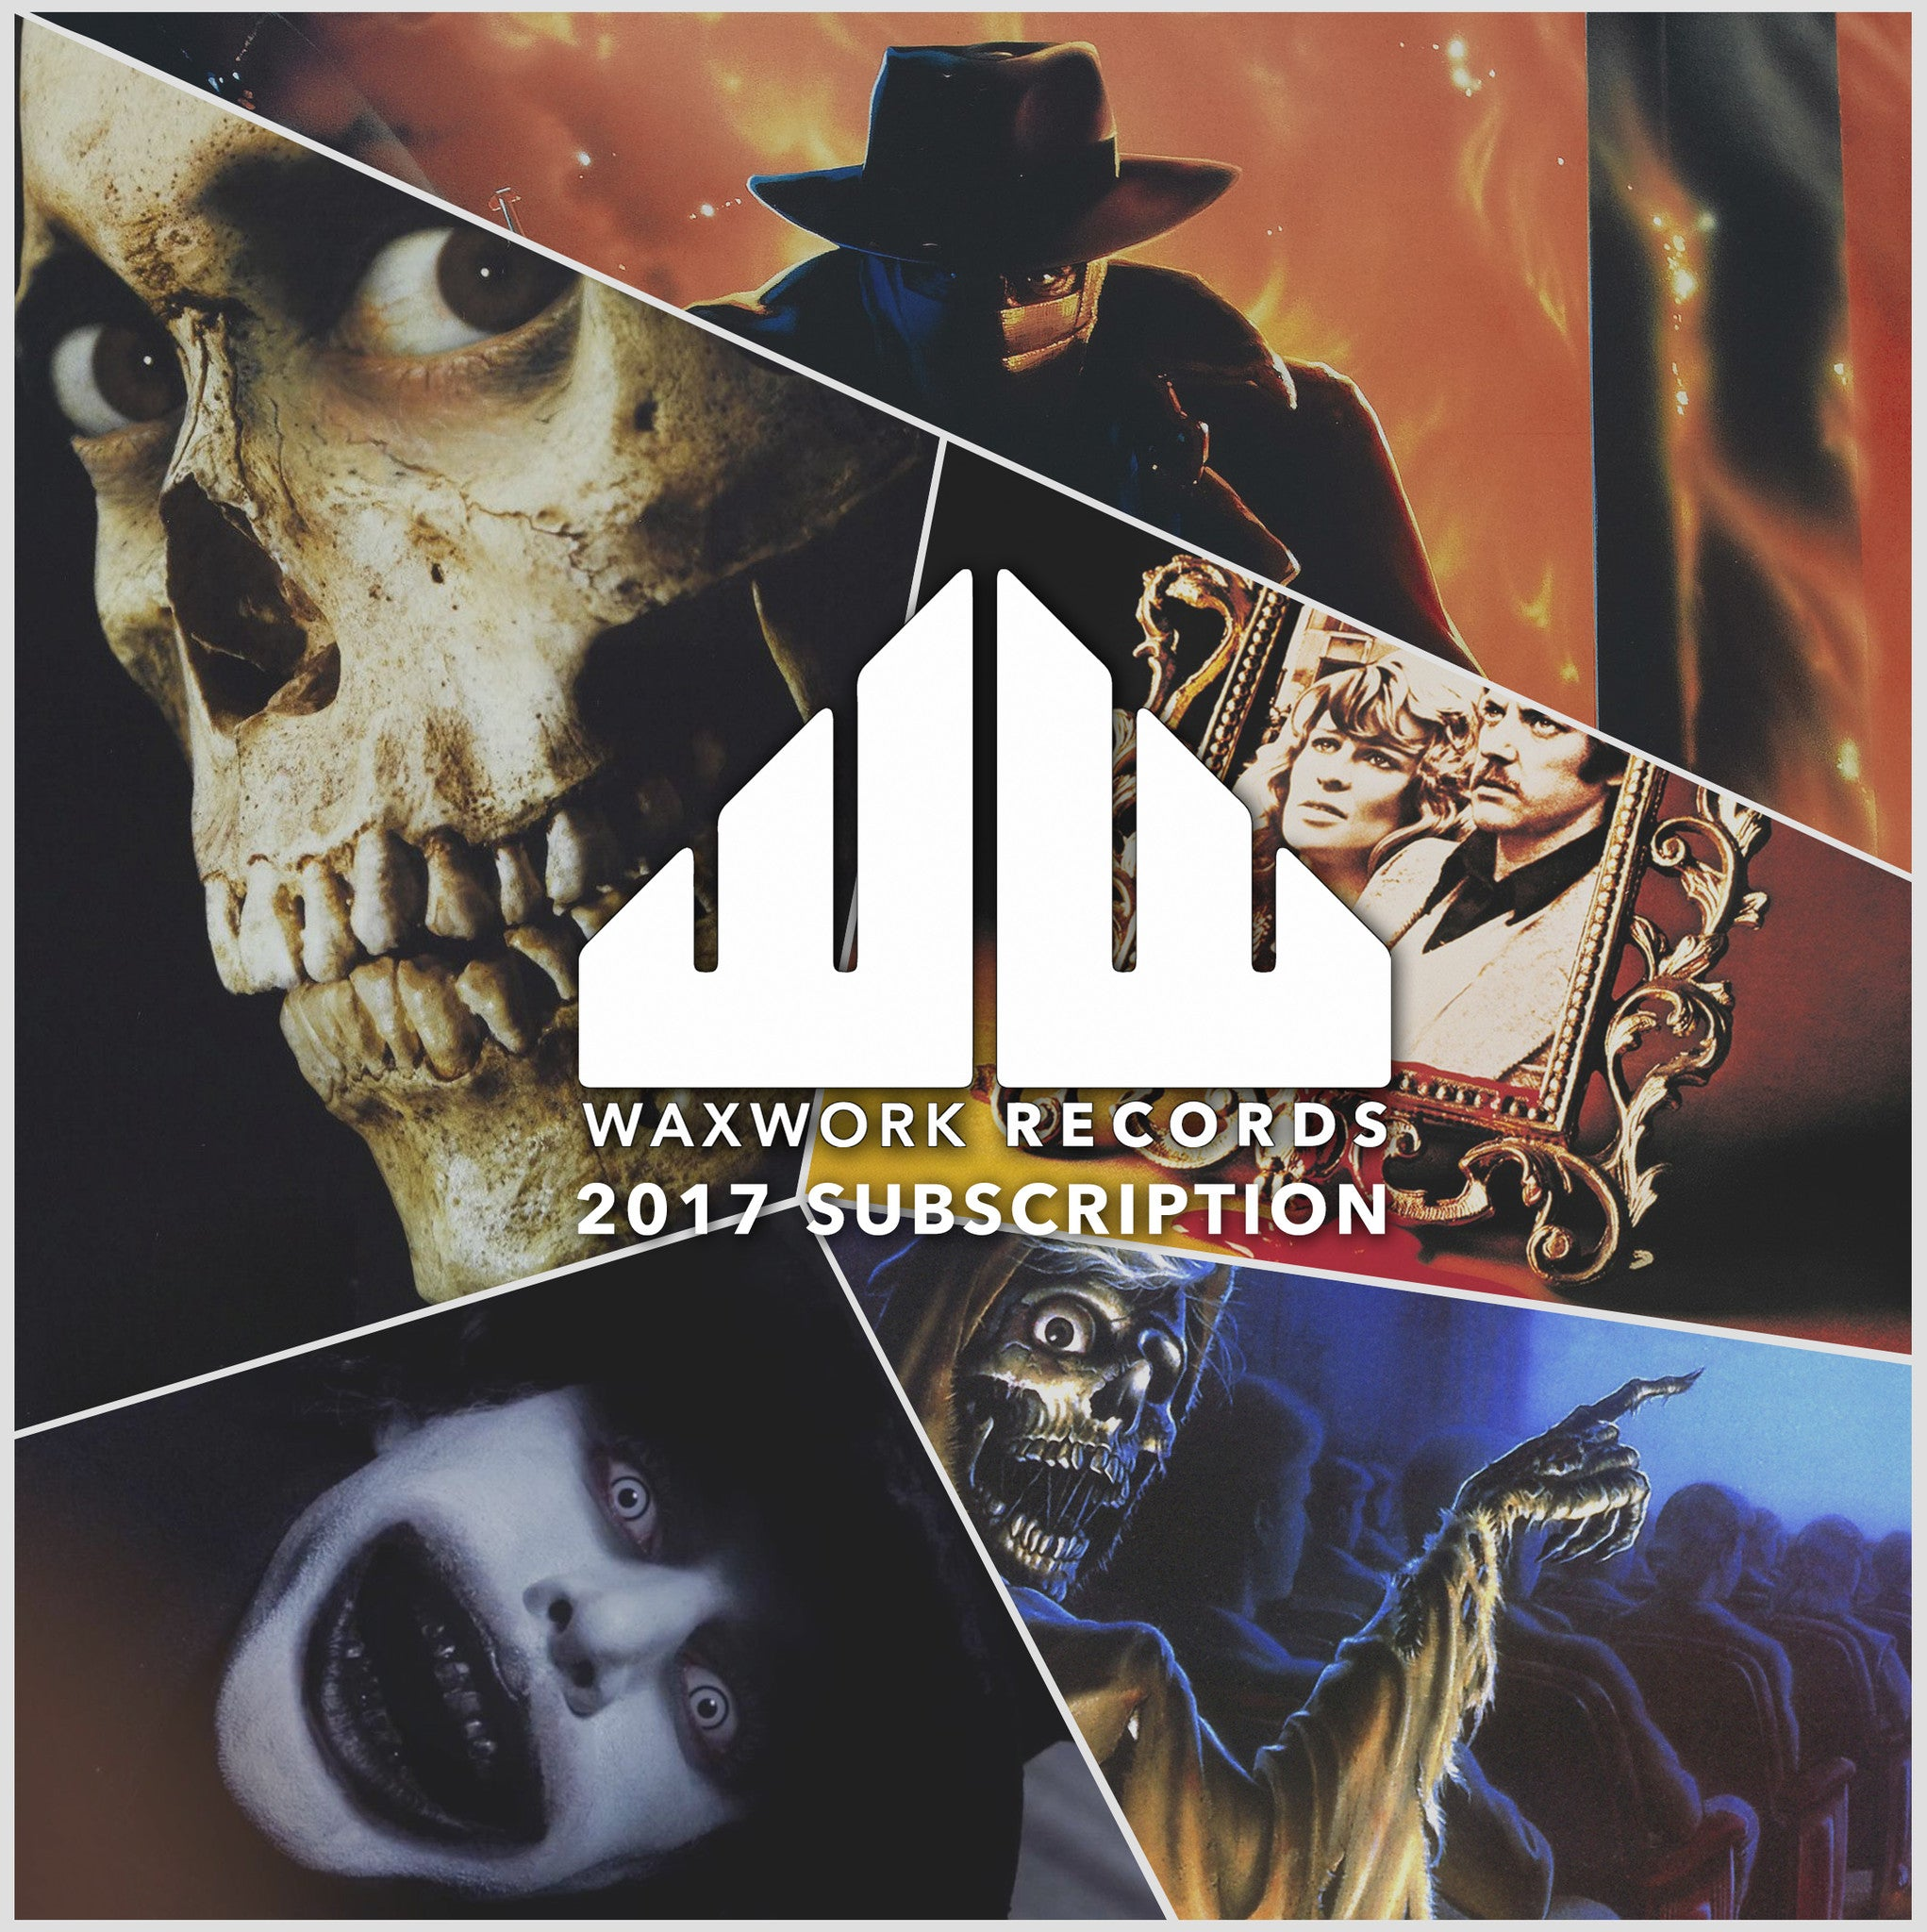 Waxwork Records 2017 Subscription